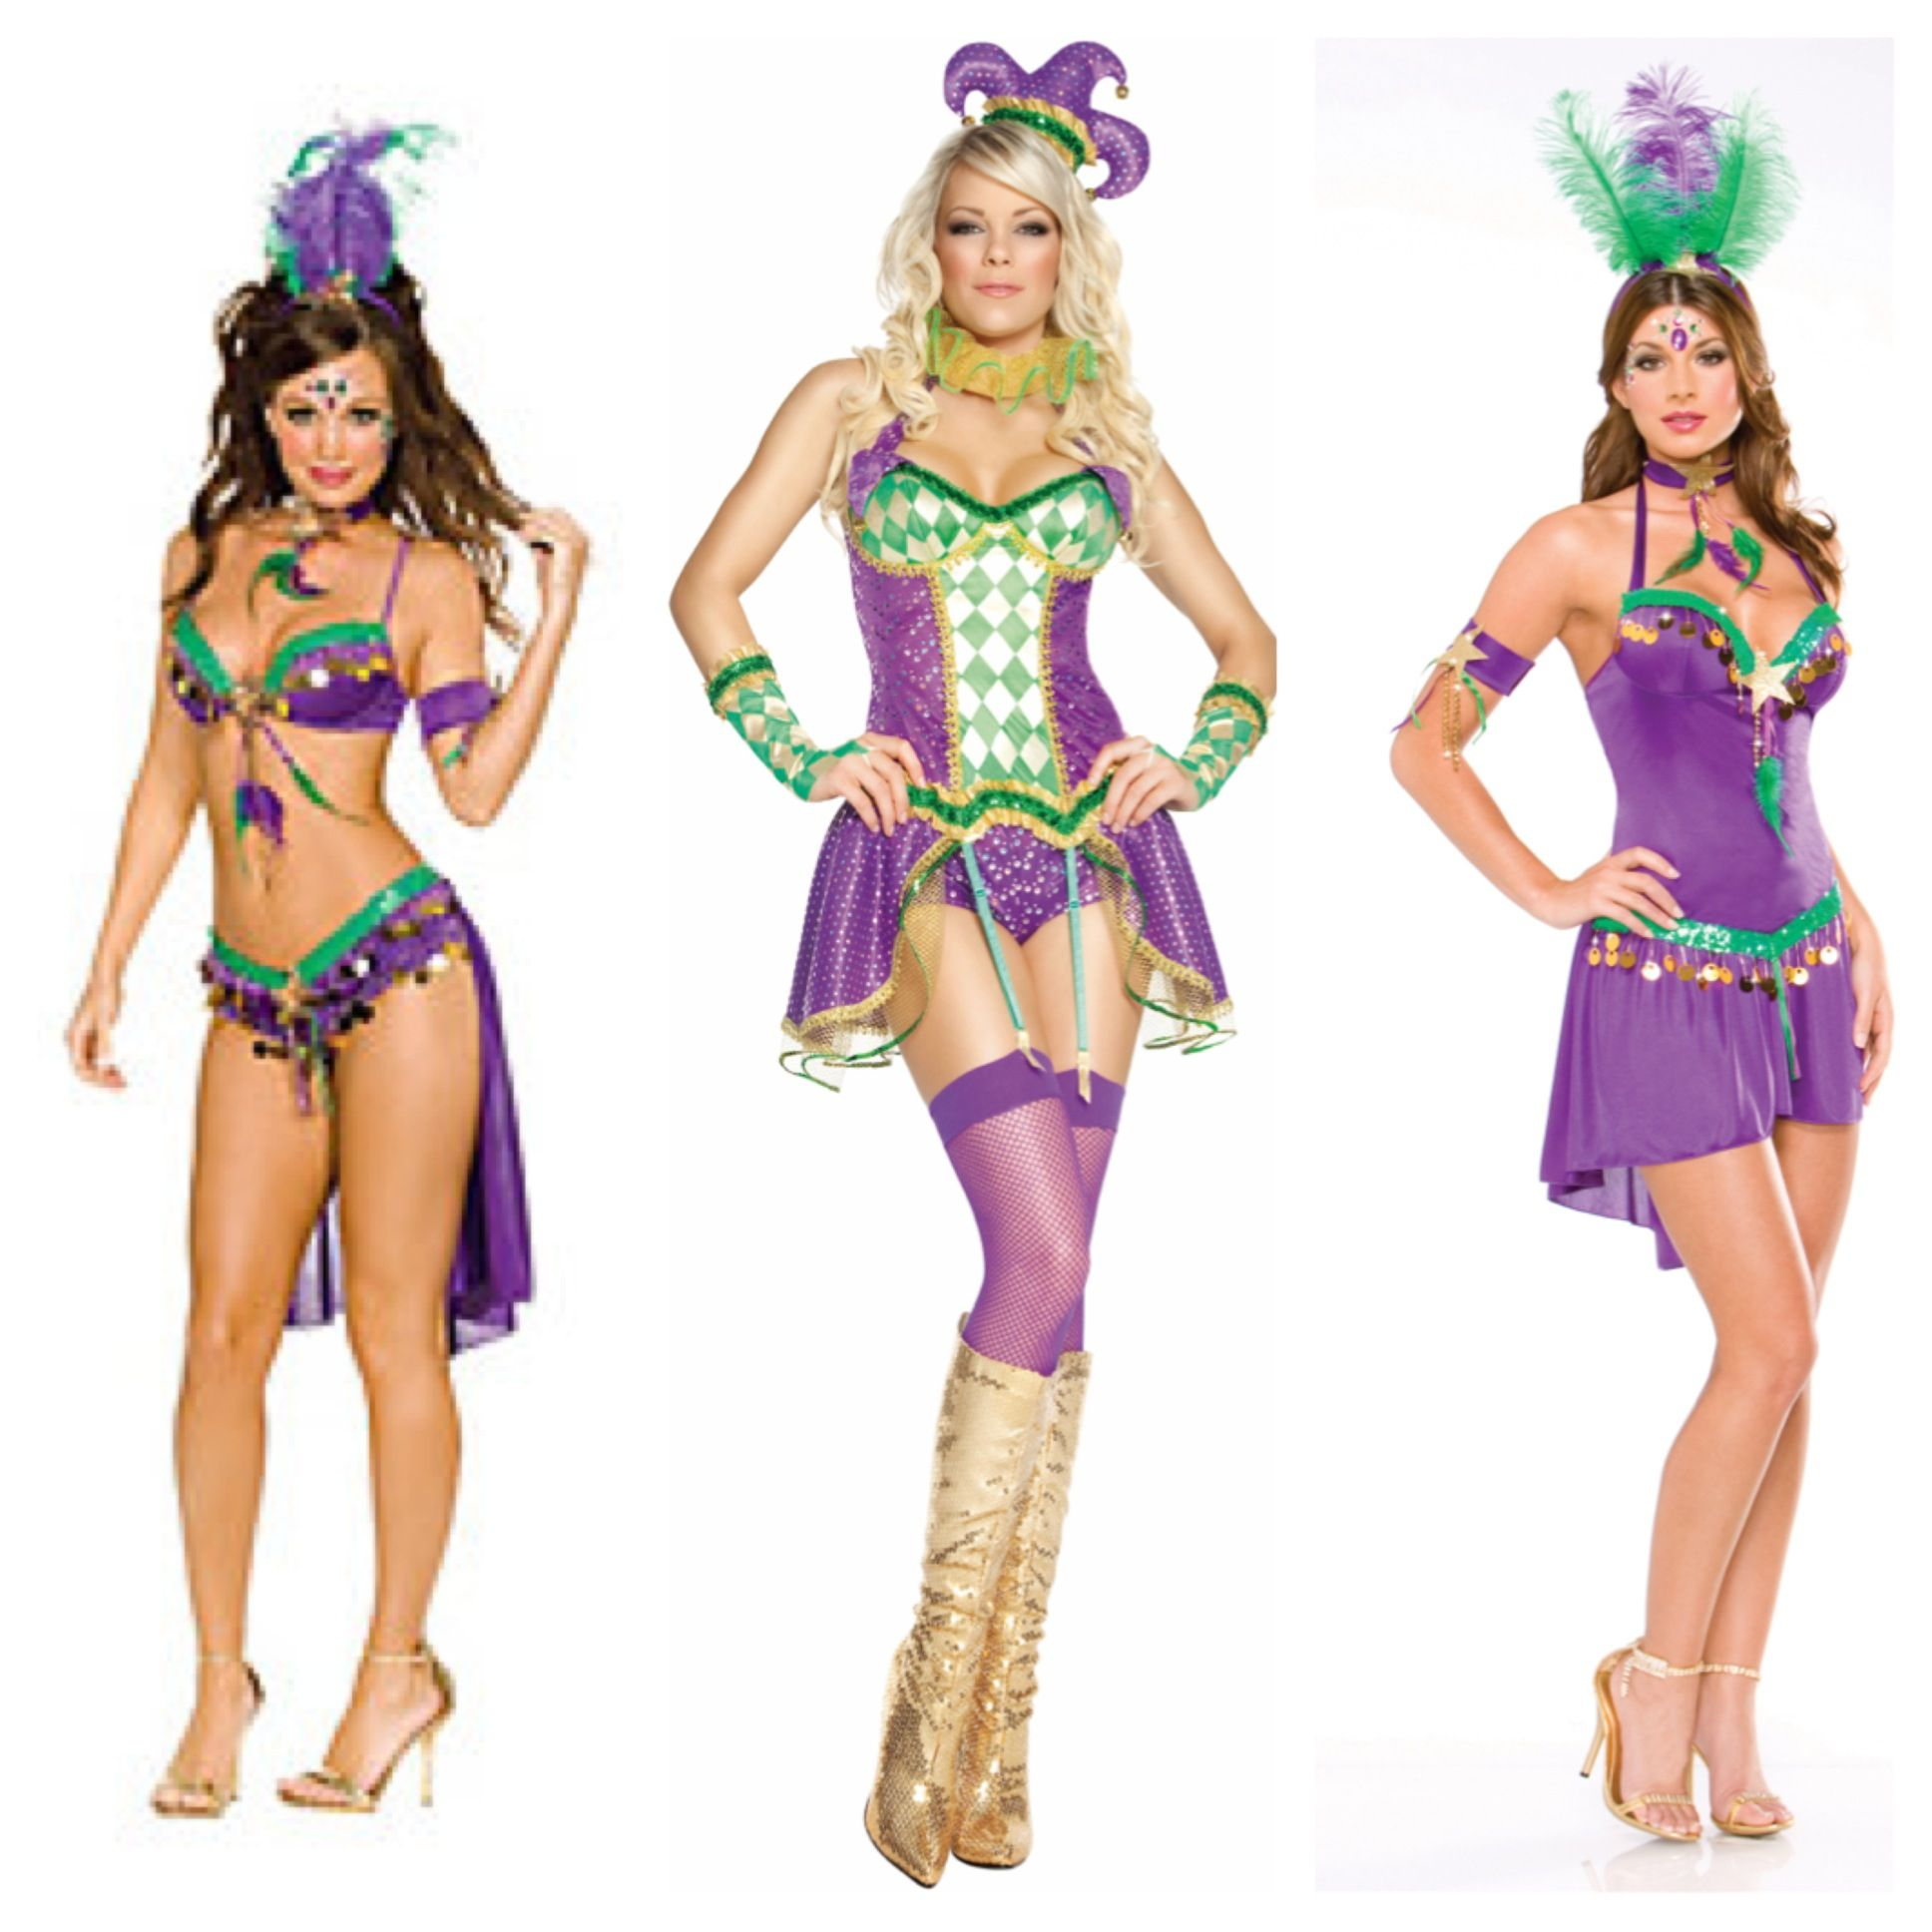 Mardi Gras Costumes Like The Idea Of A Belt With Charms And Maybe Ribbon On Her Tutu